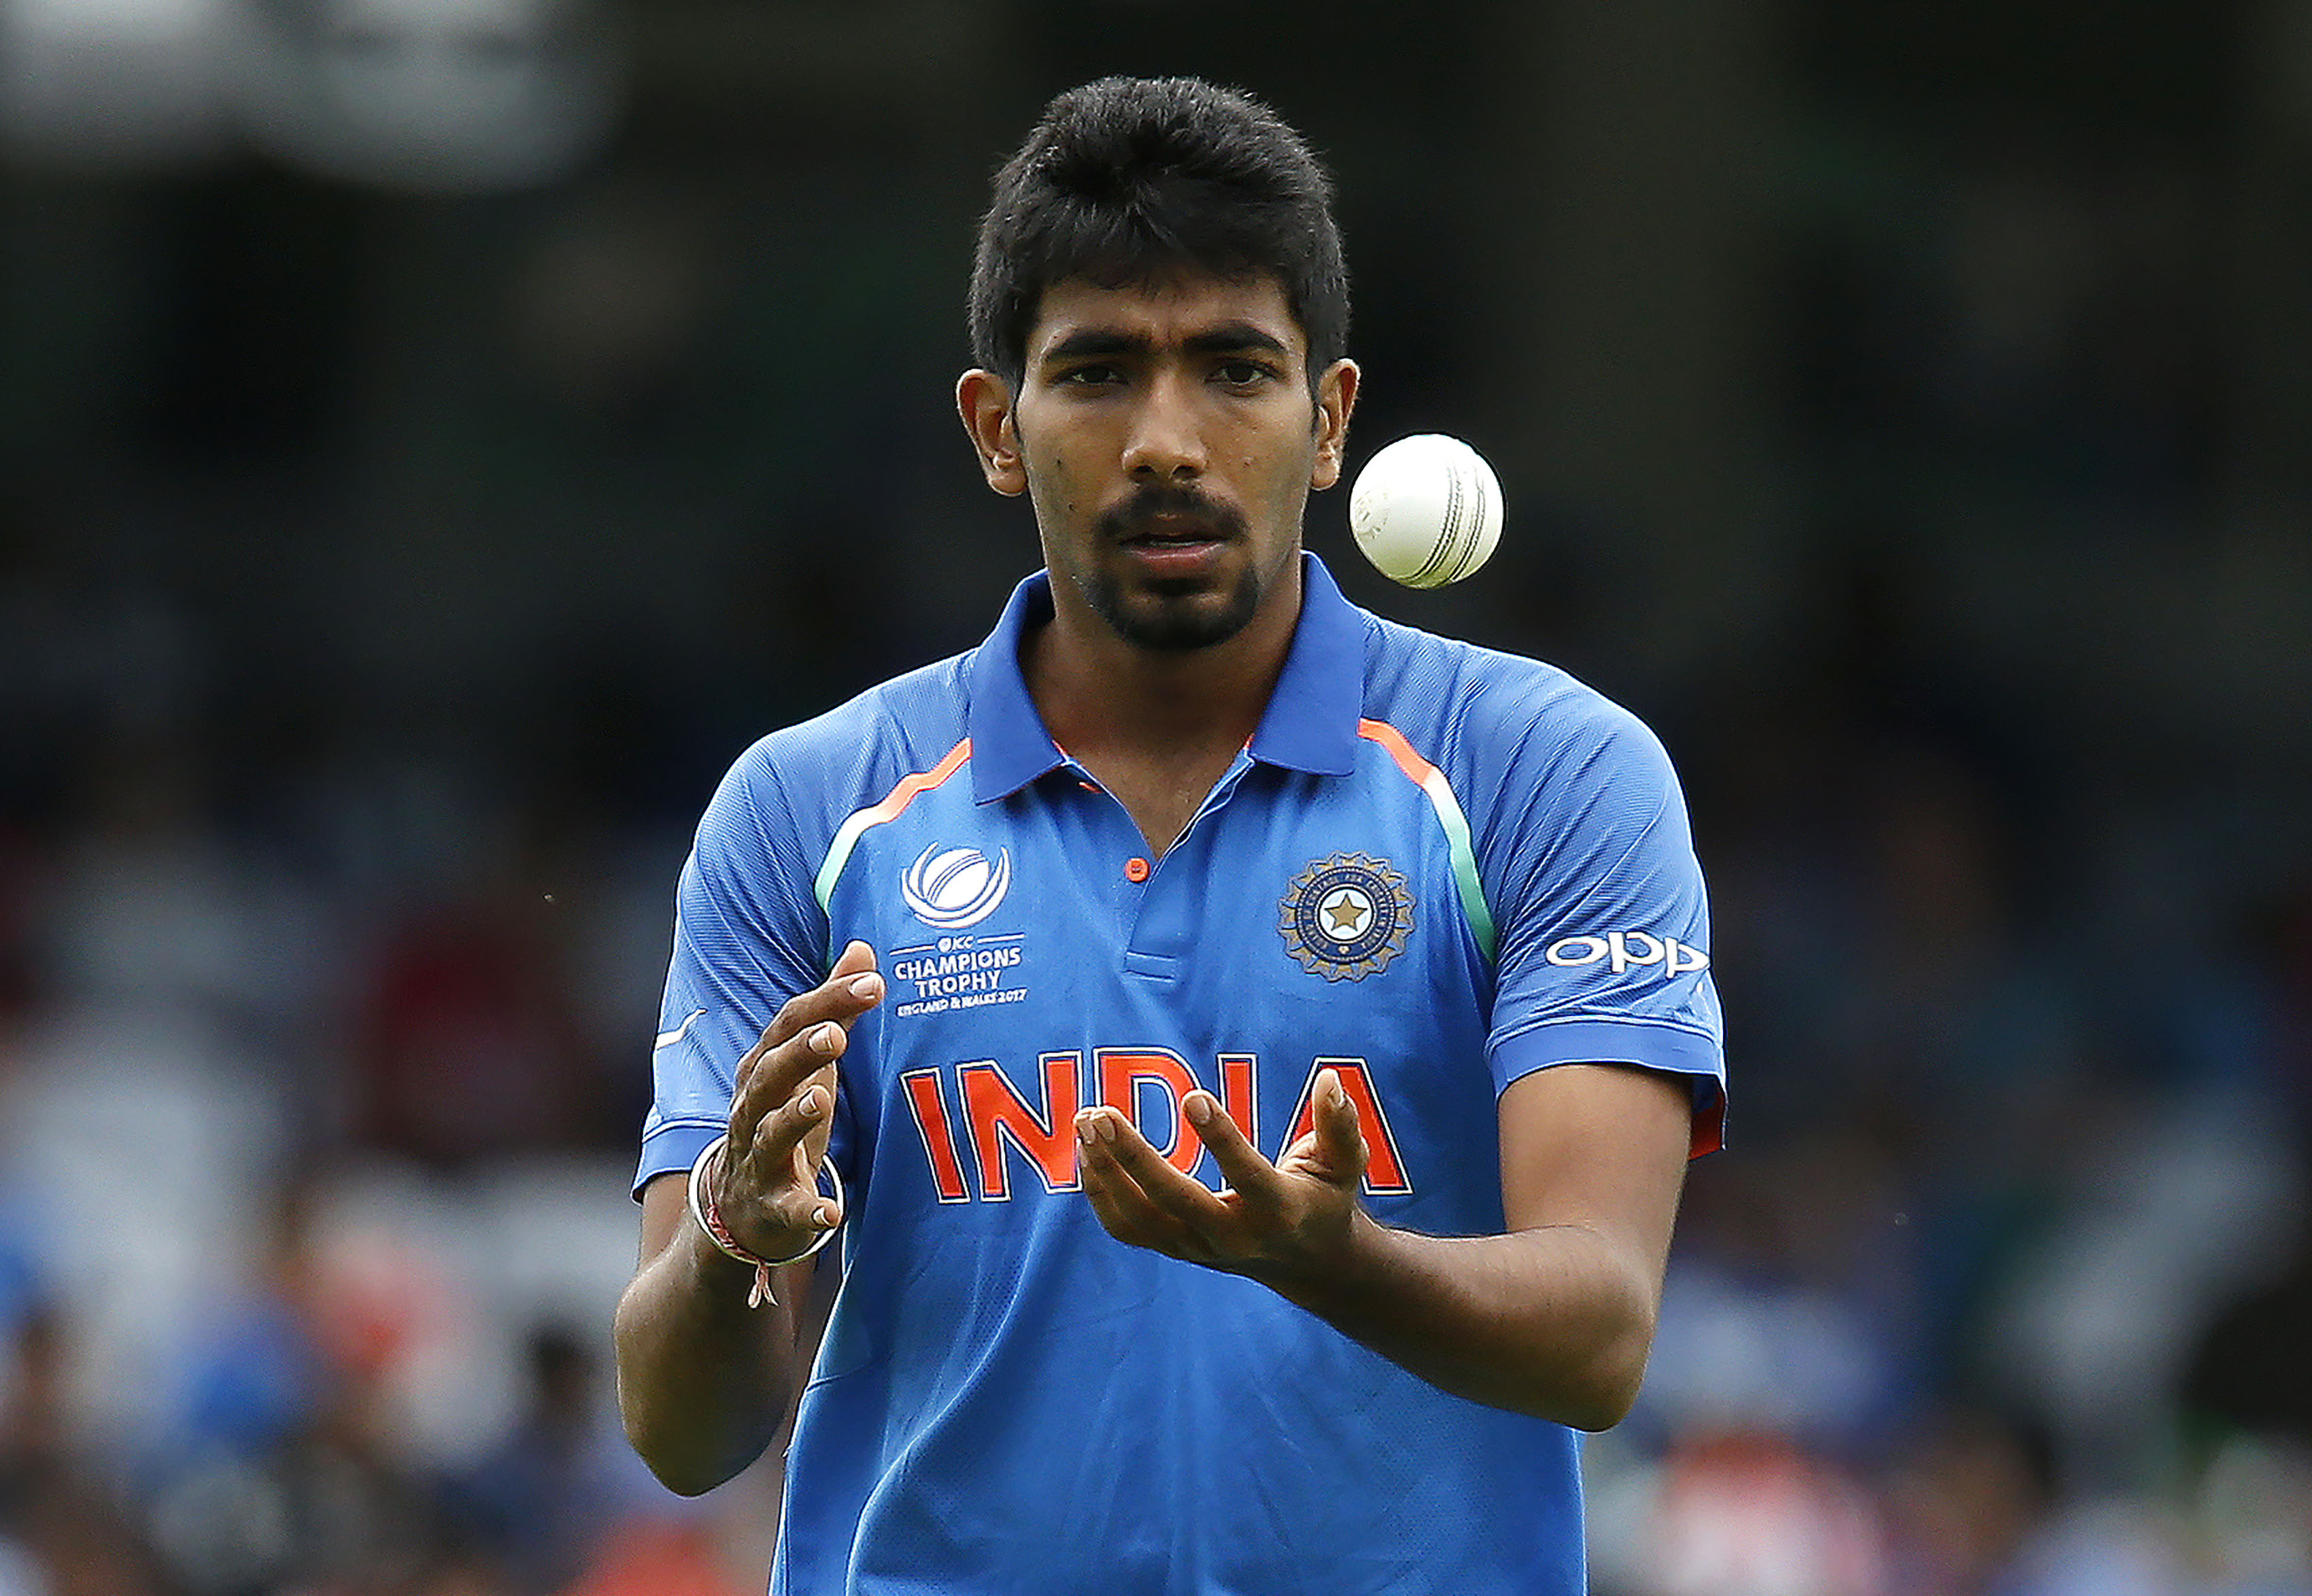 After a poor start, Bumrah seems to have found his groove. Photo: AFP.